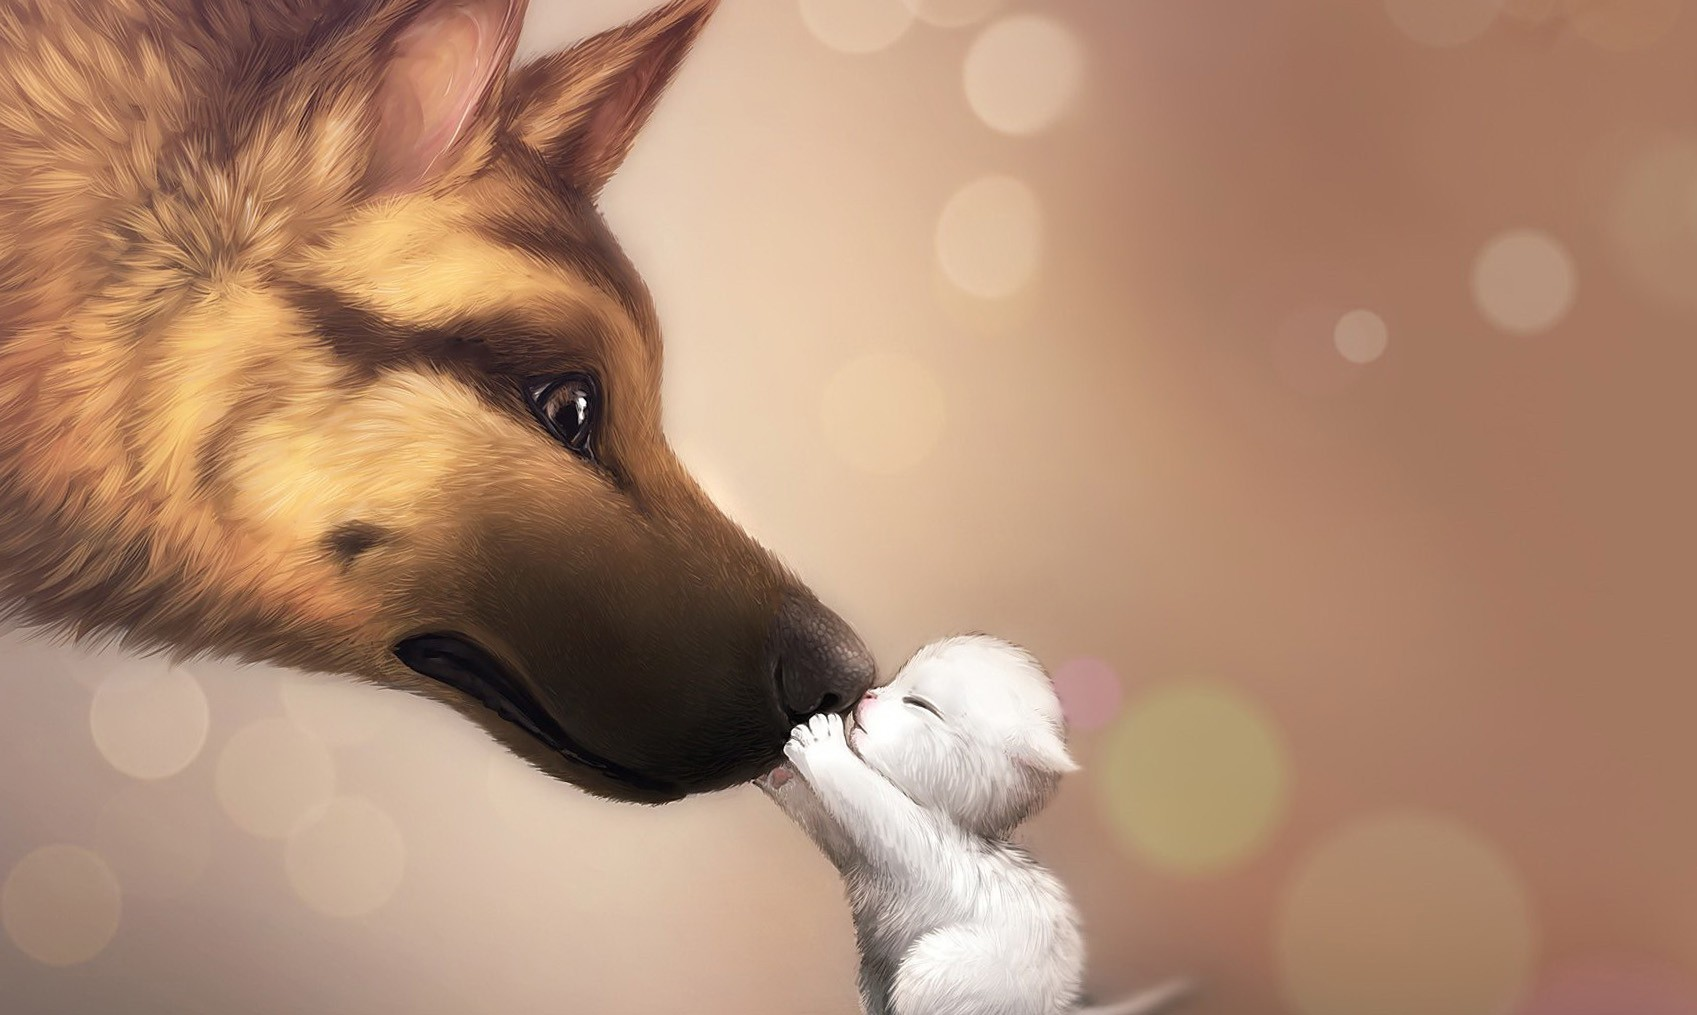 Dog Wallpaper Cool Dogs Best Friend Cute Dog Images Cute Anime Animals 1697x1015 Wallpaper Teahub Io